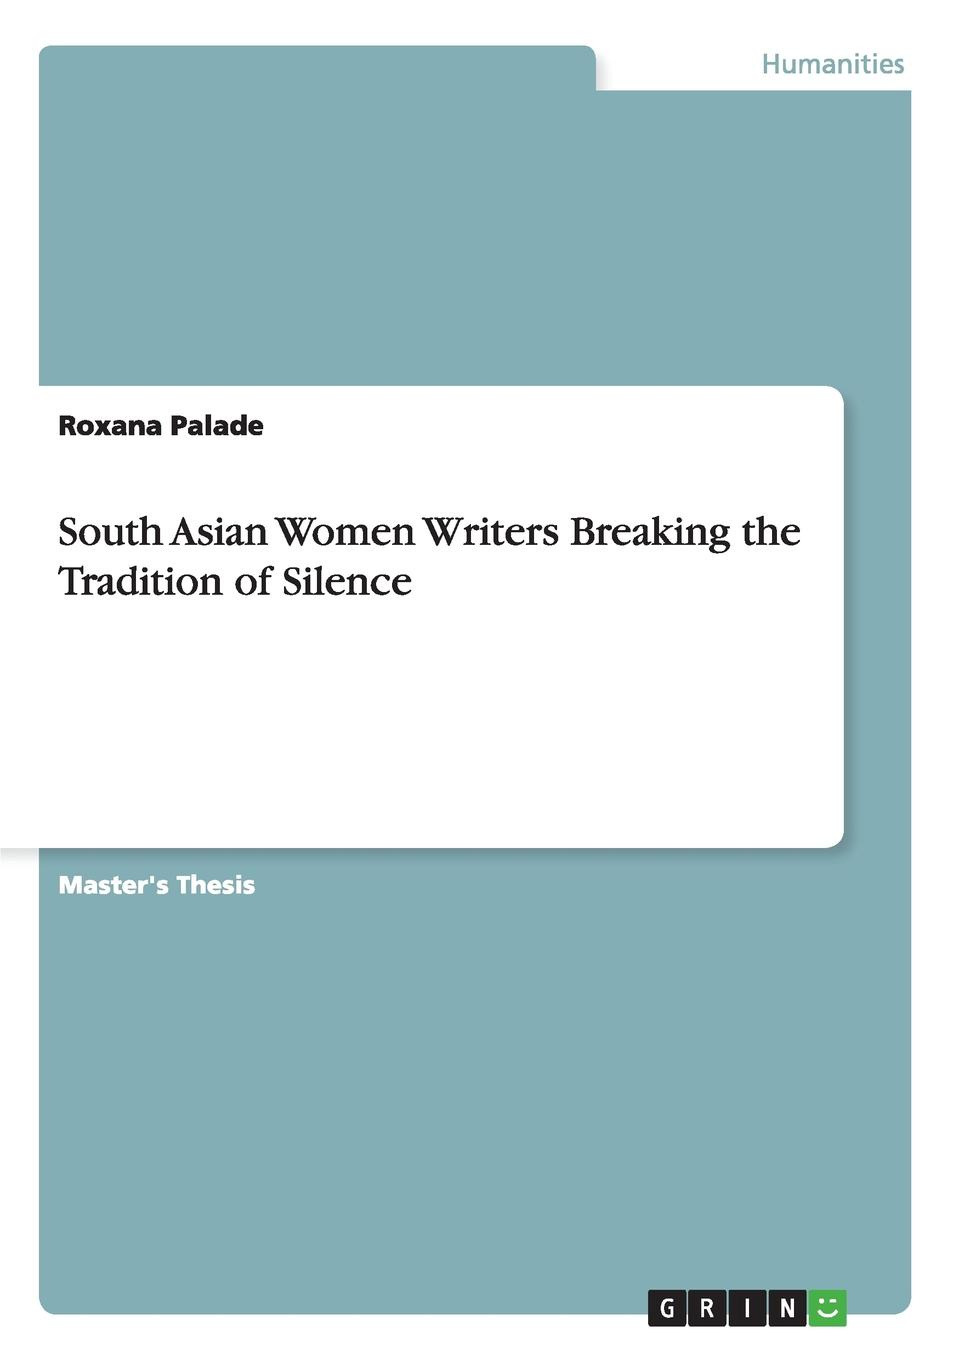 Roxana Palade South Asian Women Writers Breaking the Tradition of Silence cd art of noise in visible silence deluxe